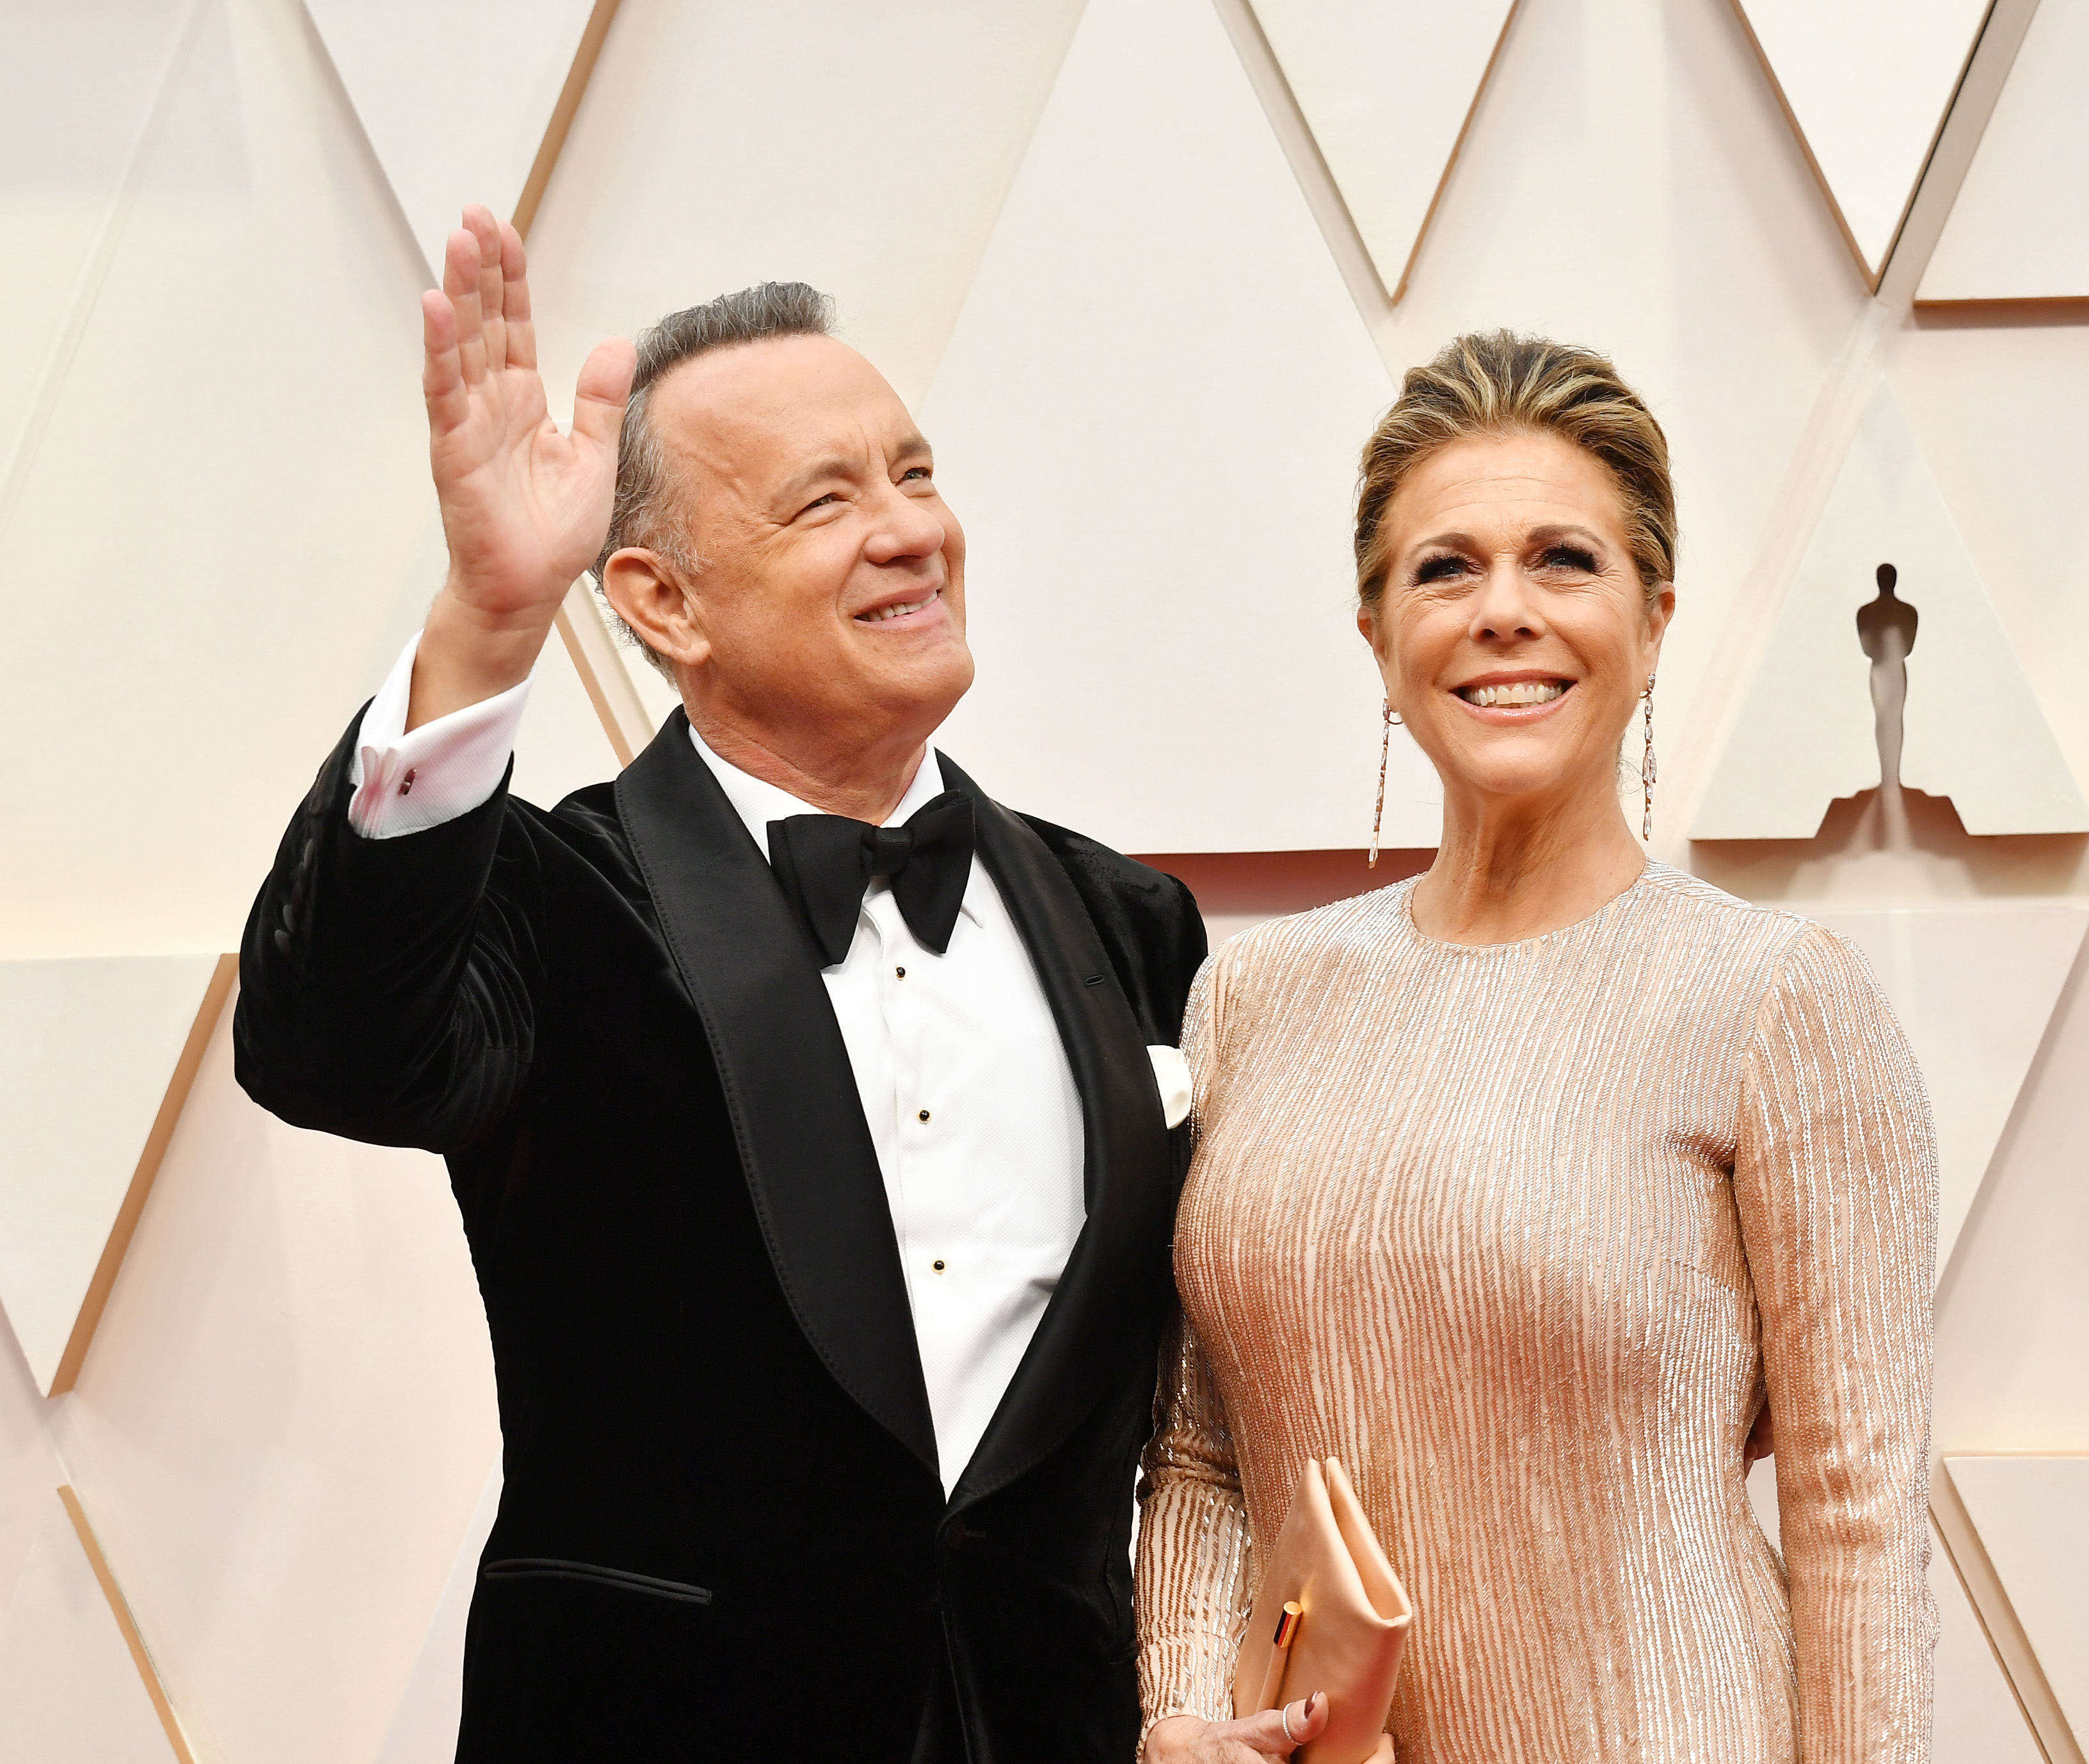 HOLLYWOOD, CALIFORNIA - FEBRUARY 09: (L-R) Tom Hanks and Rita Wilson attend the 92nd Annual Academy Awards at Hollywood and Highland on February 09, 2020 in Hollywood, California. (Photo by Amy Sussman/Getty Images)